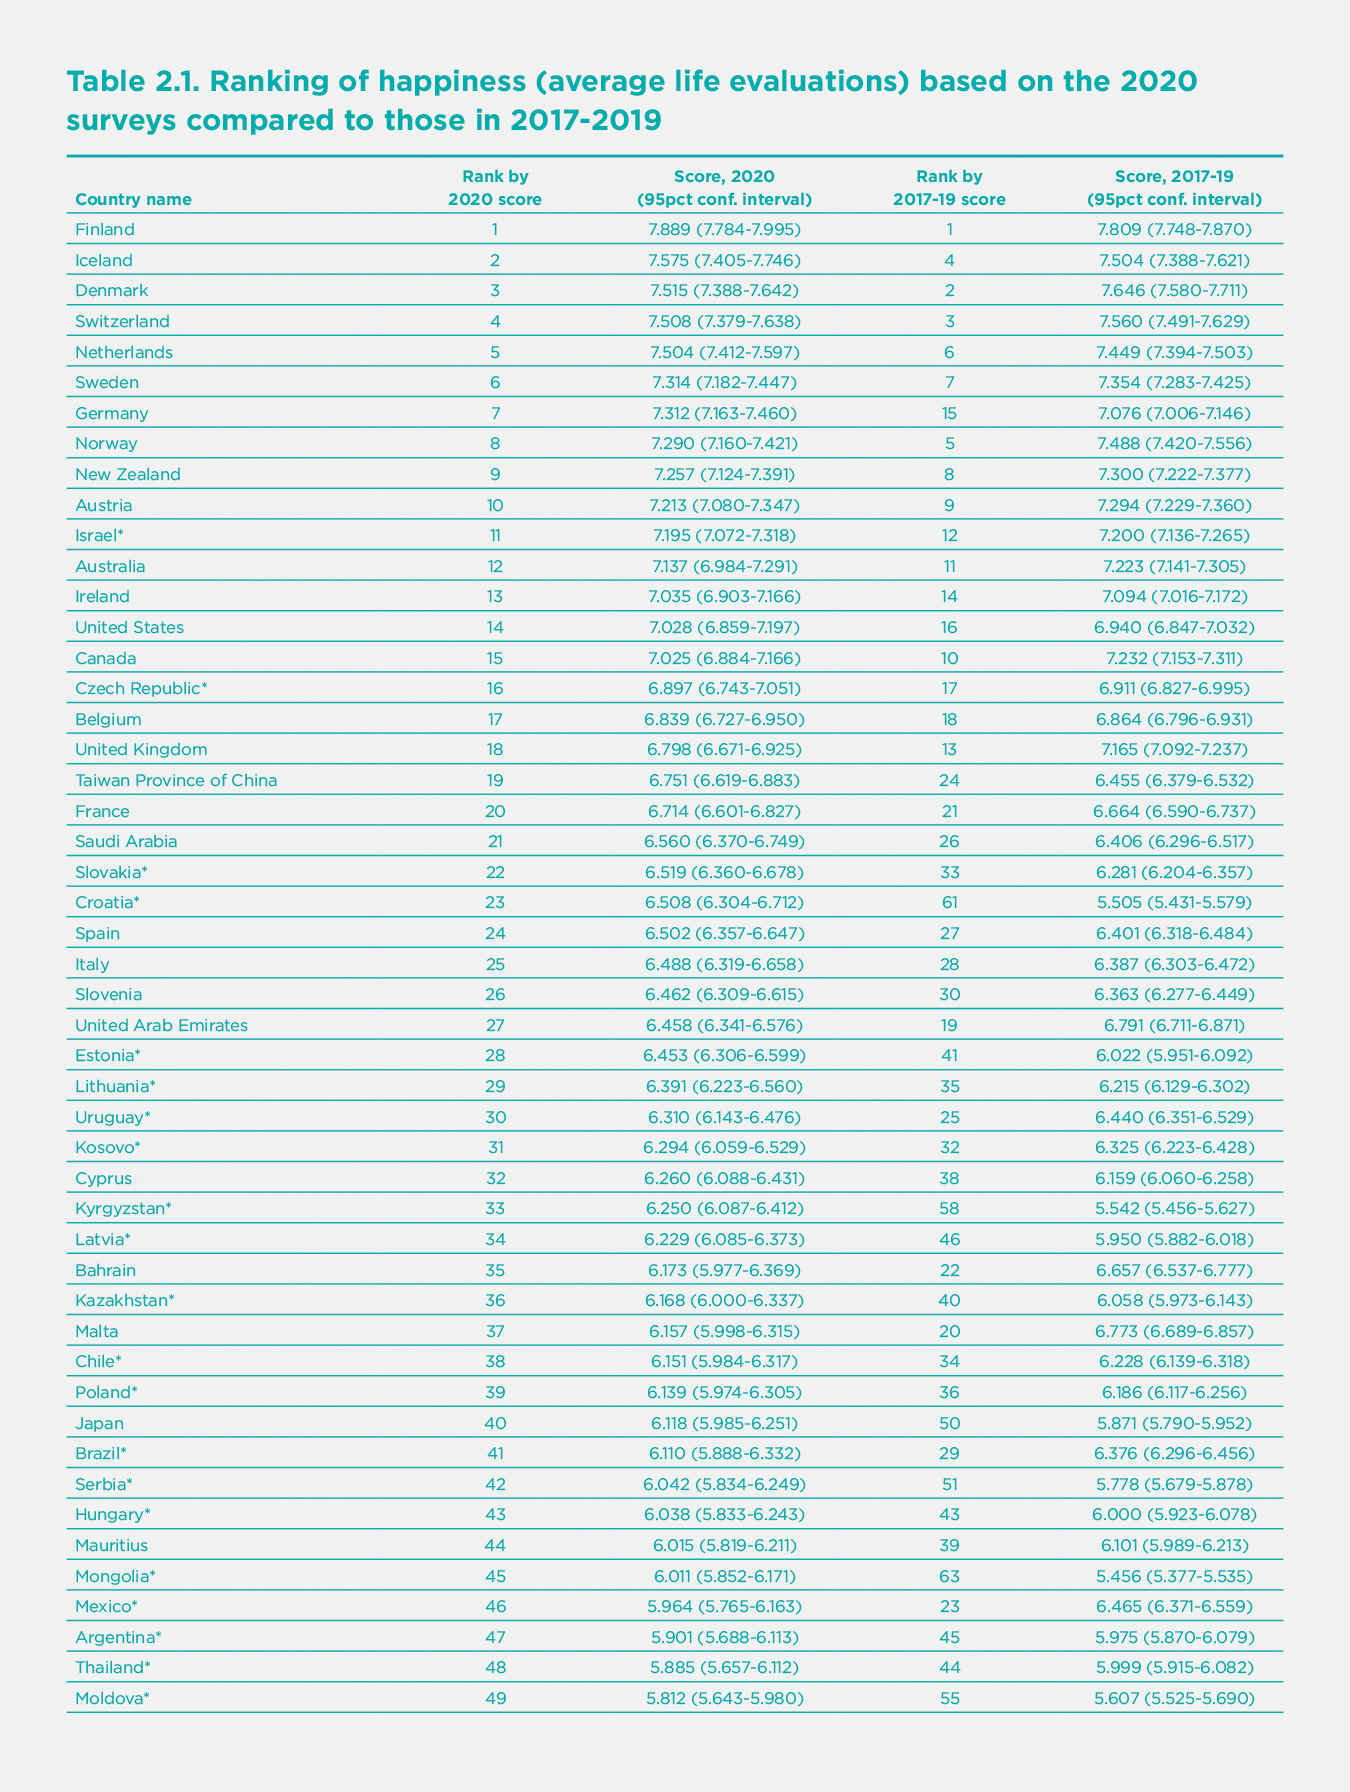 Table 2.1. Ranking of happiness (average life evaluations) based on the 2020 surveys compared to those in 2017-2019